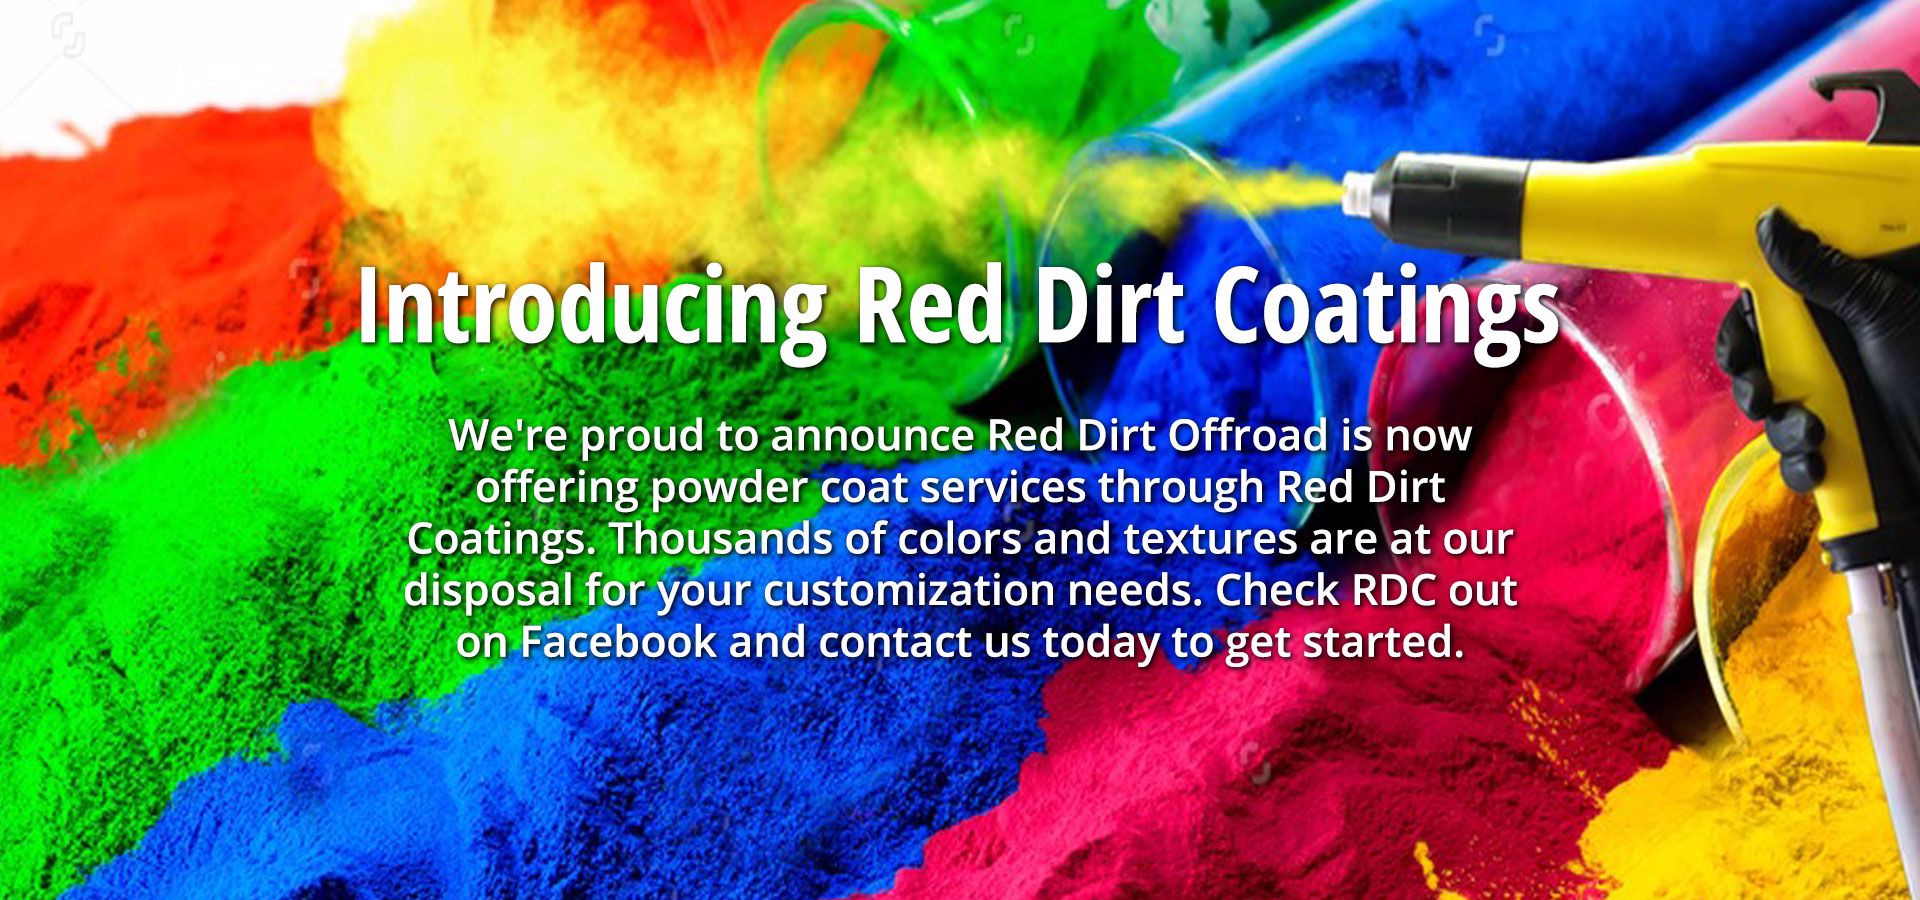 Introducing Red Dirt Coatings